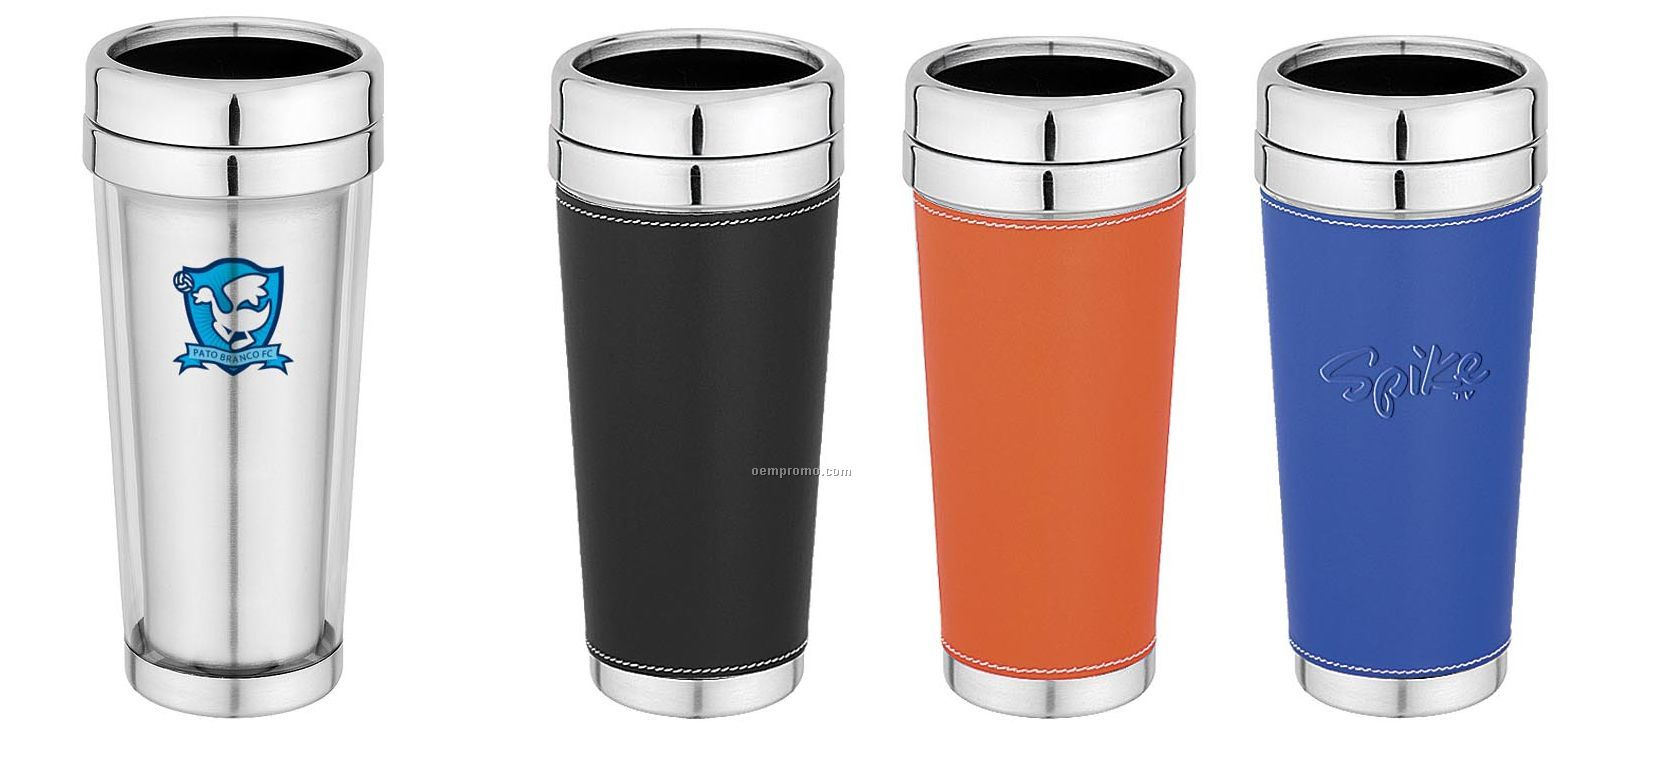 Travel Mug/Tumbler - 16 Oz. Clear Plastic Outer & Stainless Steel Interior